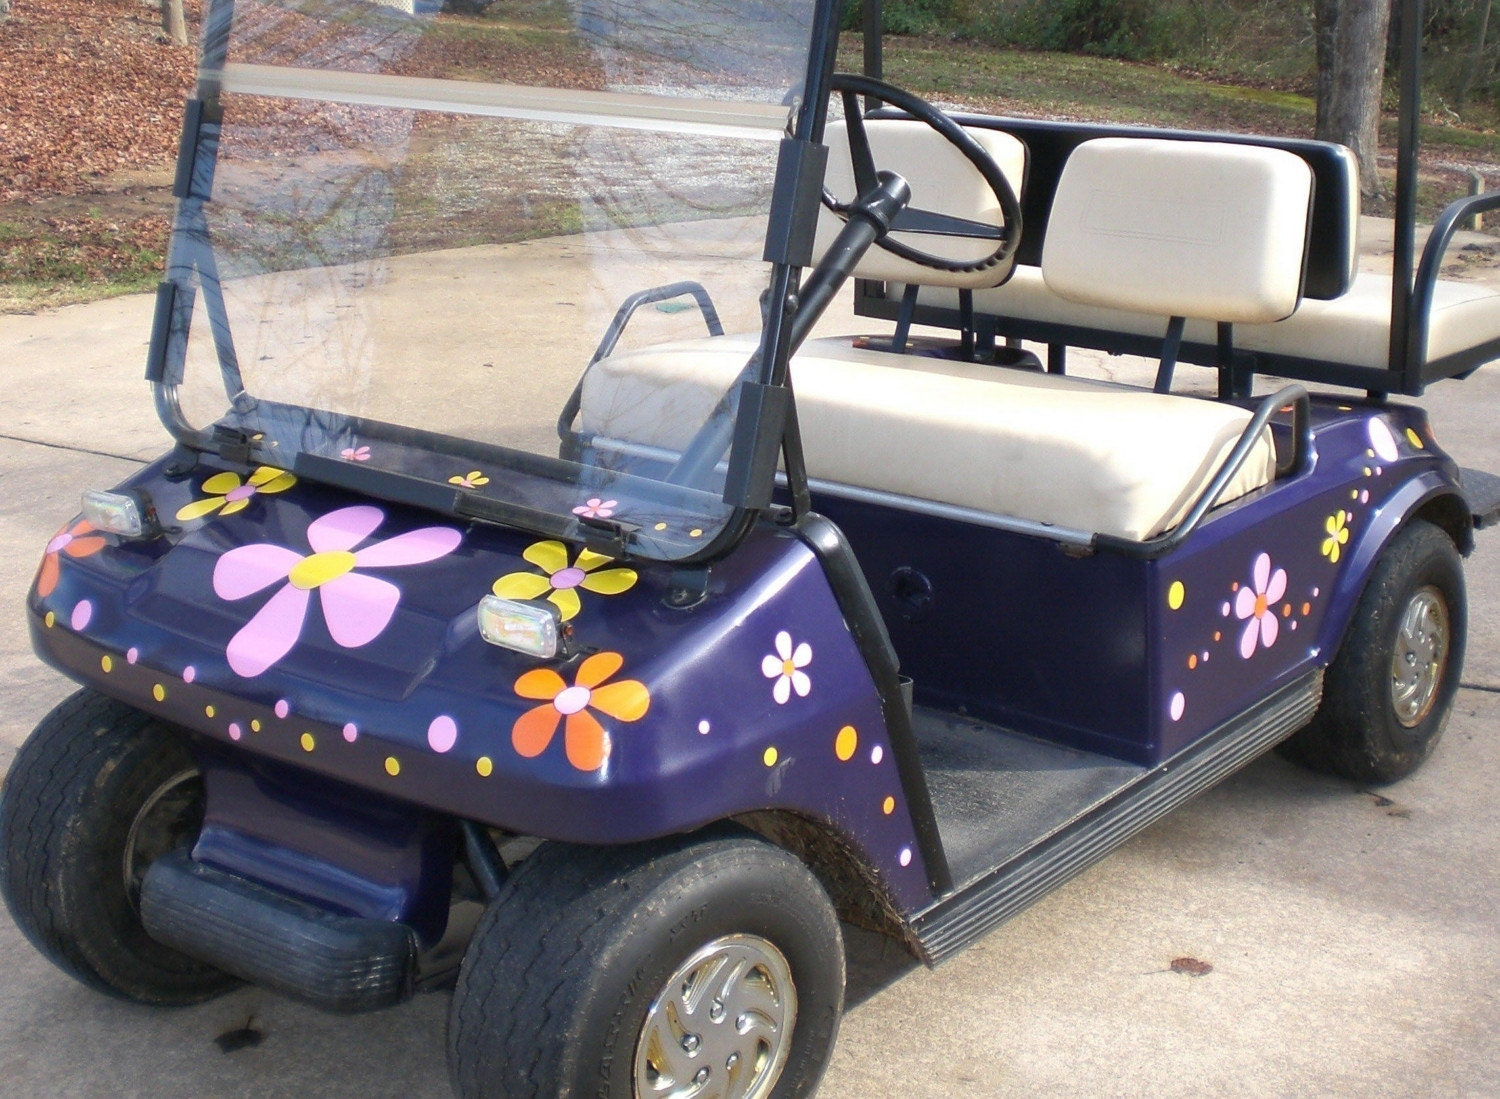 Hippy Flowers For Your Golf Cart Vinyl Decal Sticker Adhesive